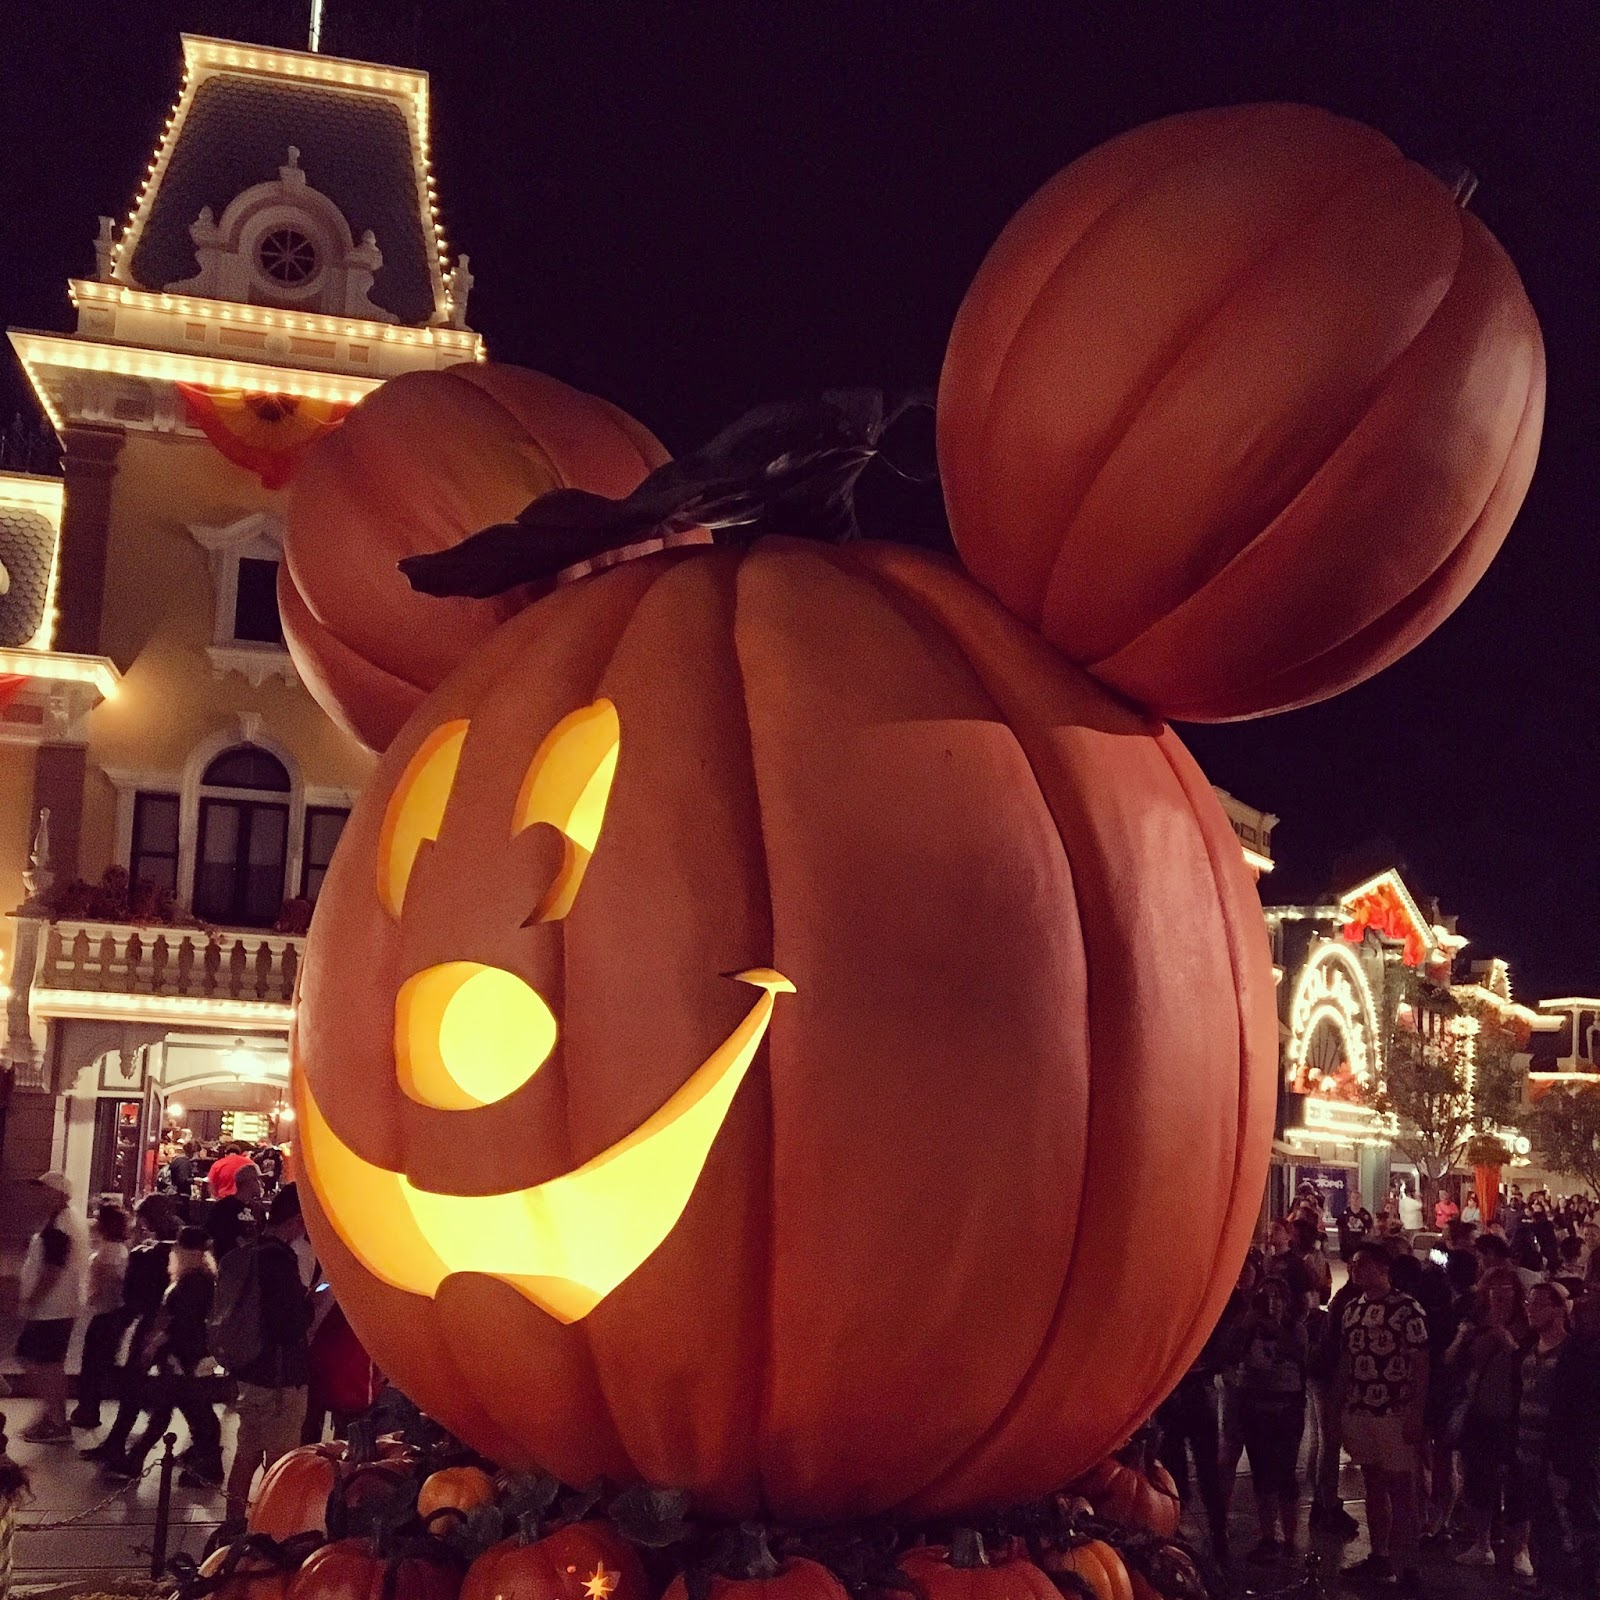 during the magical nights of mickeys halloween party families and friends alike can come to experience a halloweentime - Halloween Date This Year